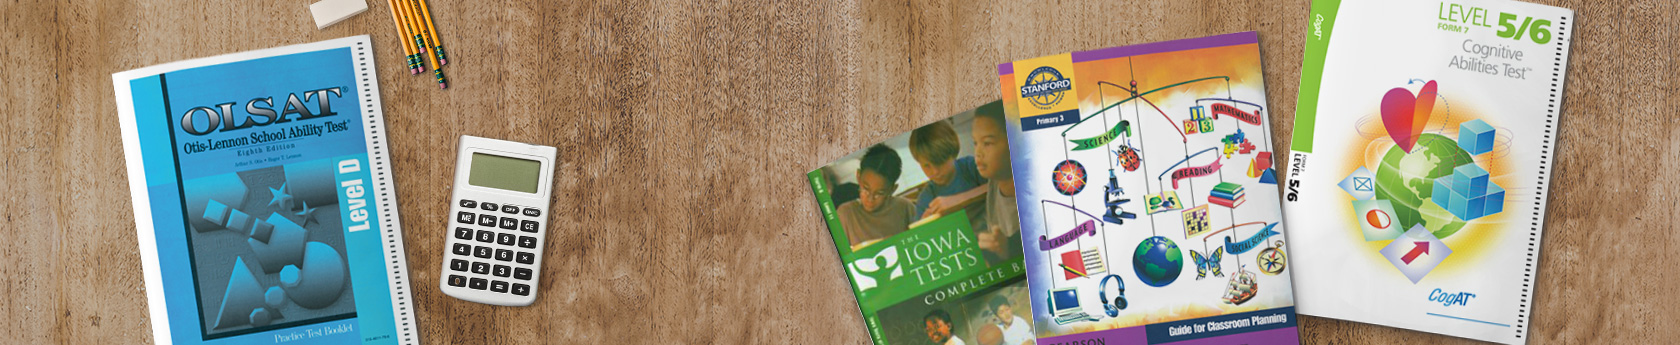 Standardized Test booklets